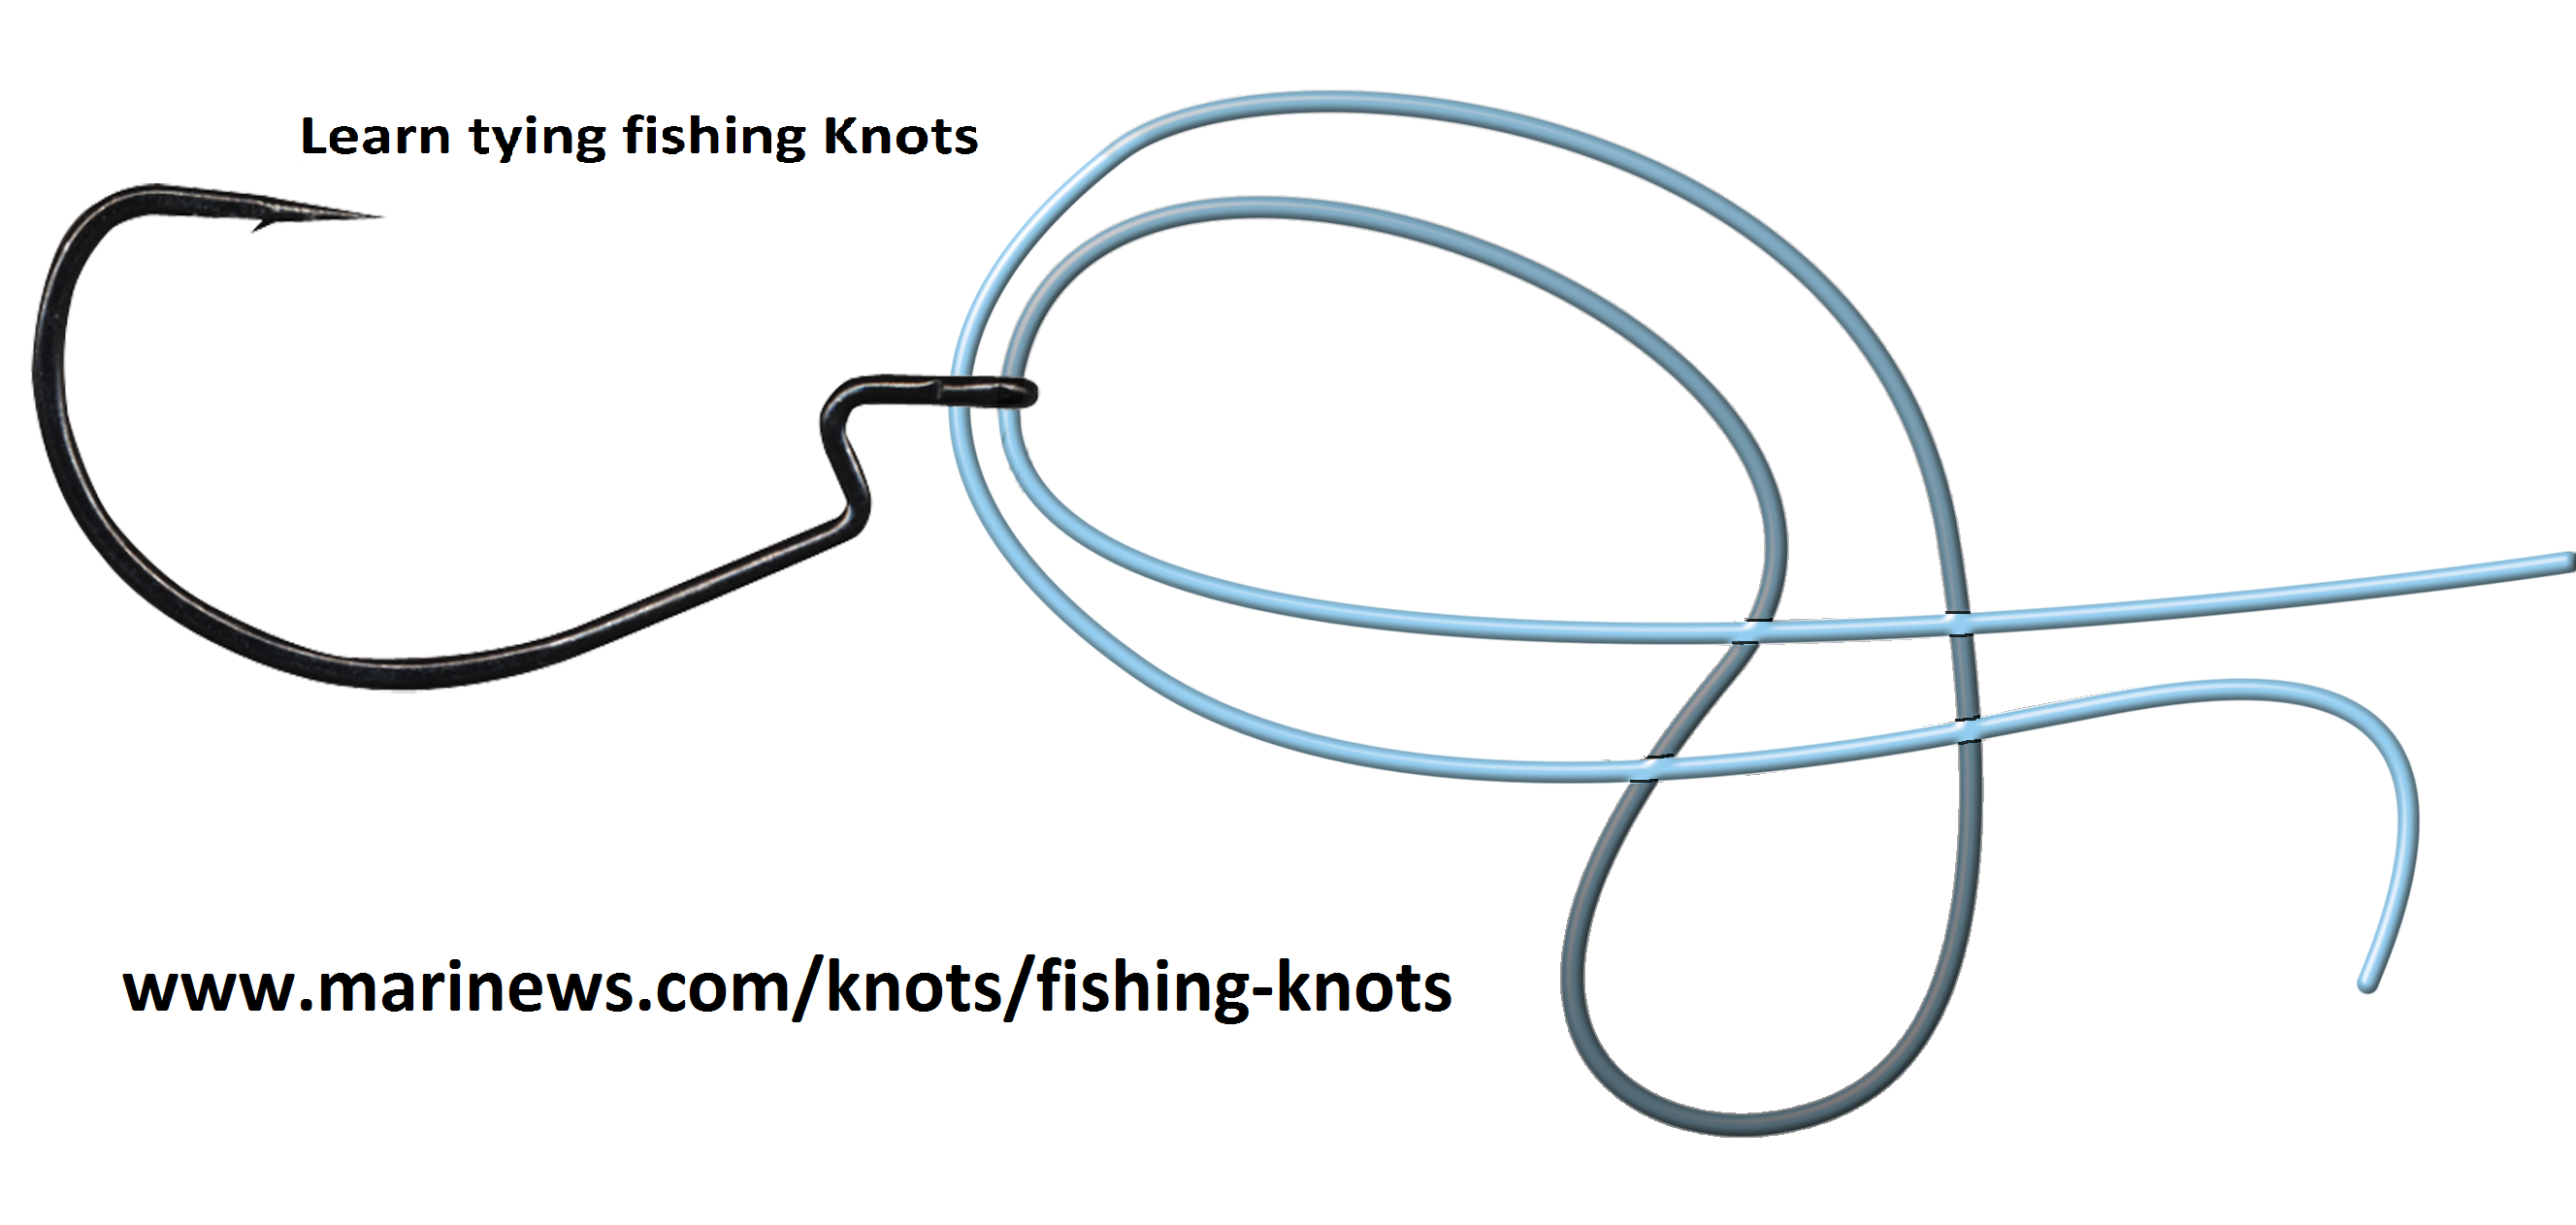 Slim Beauty Knot Best Load Bearing Capability Knots Tie Tying Diagram How To Fishing